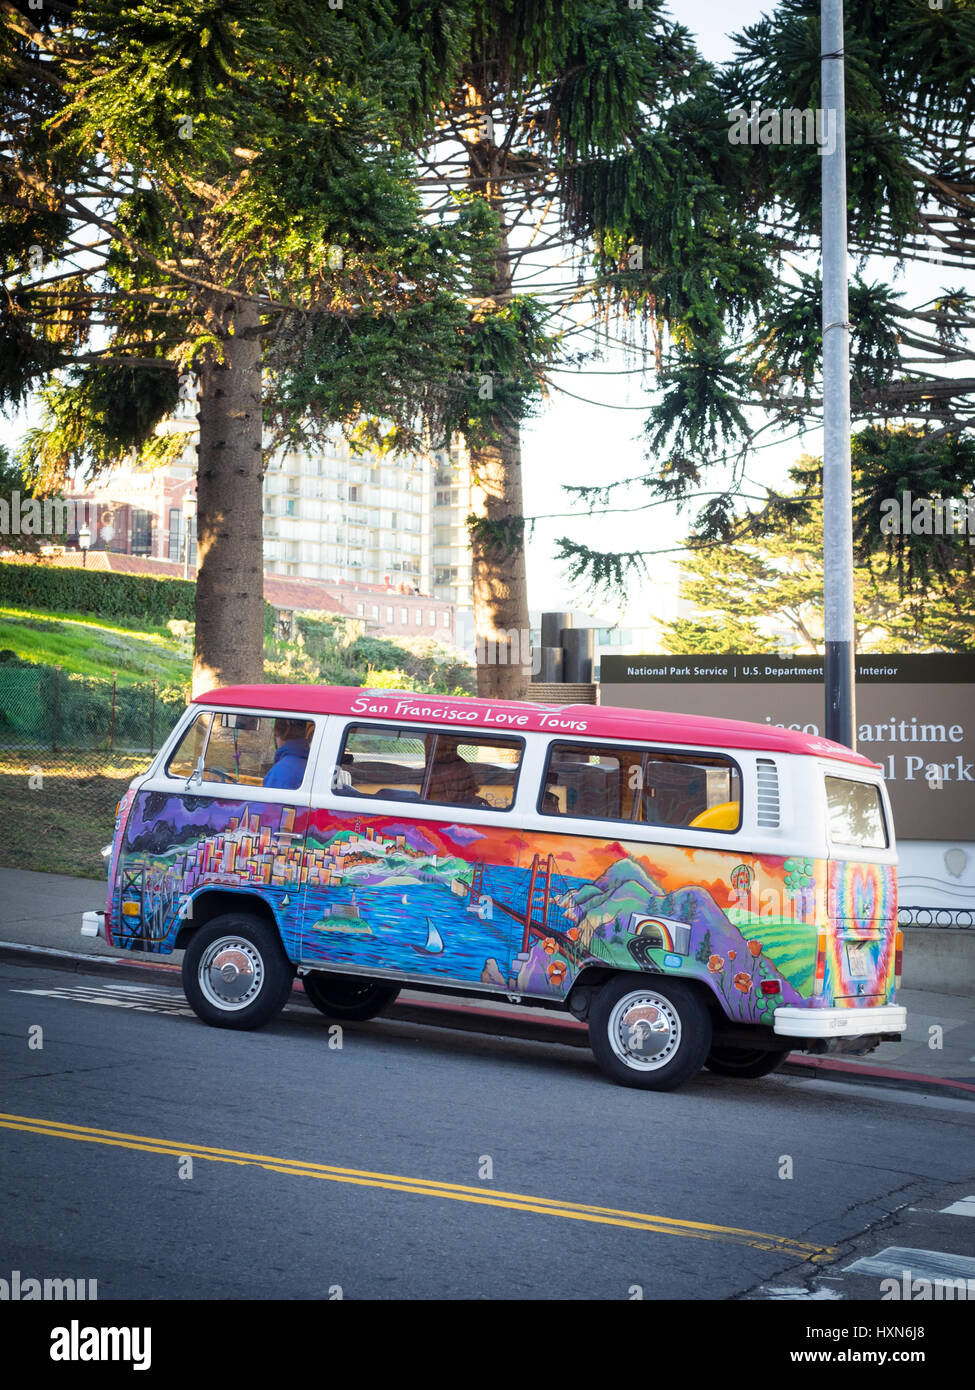 a san francisco love tours volkswagen bus 1972 vw bus painted by stock photo alamy https www alamy com stock photo a san francisco love tours volkswagen bus 1972 vw bus painted by madison 136919840 html